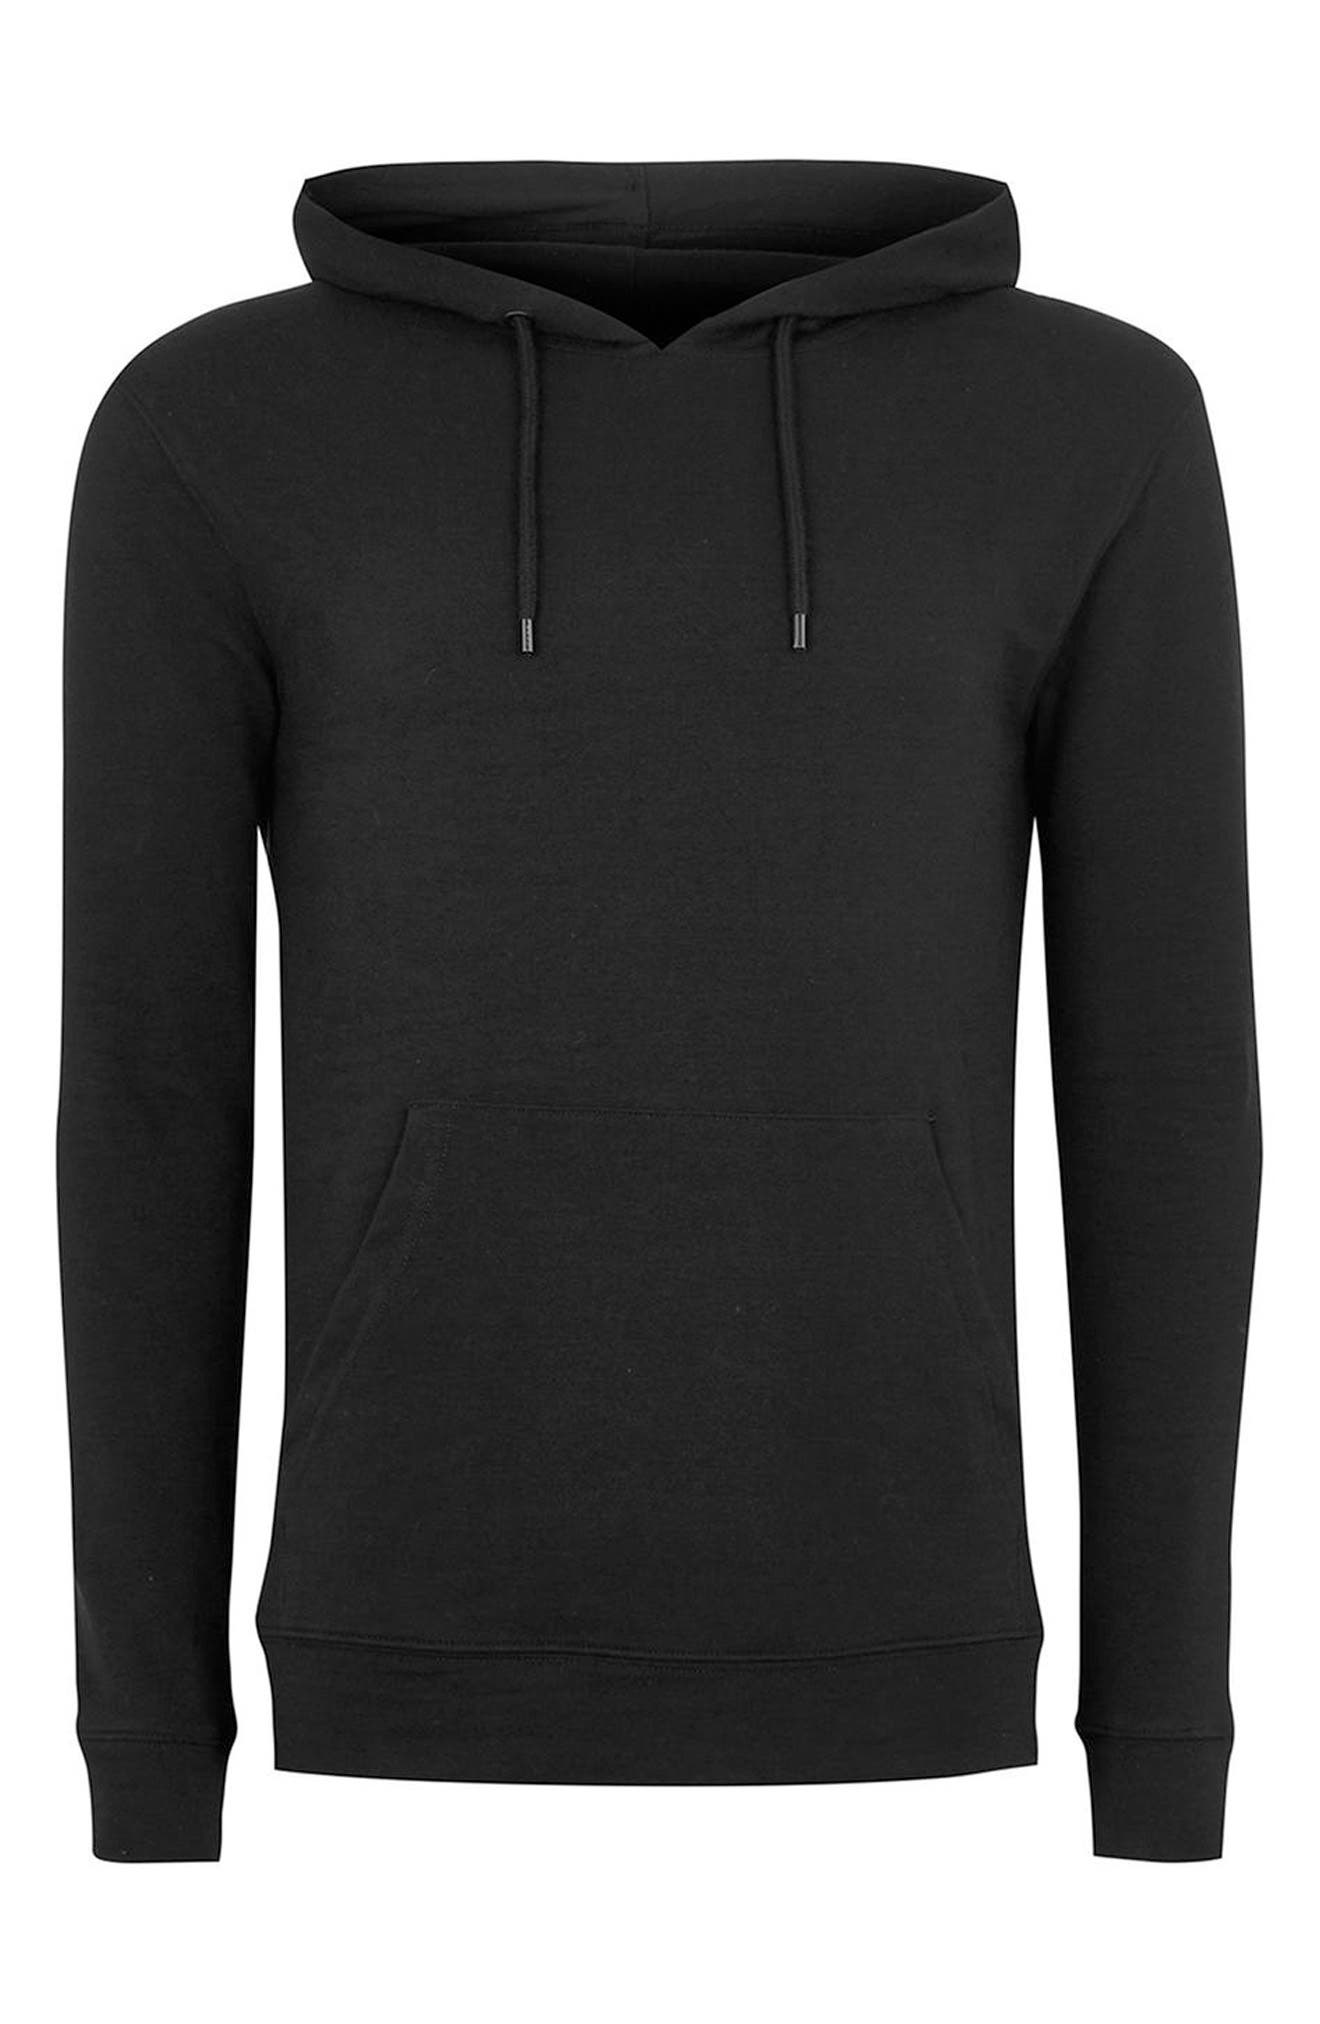 Ultra Muscle Fit Hoodie,                             Alternate thumbnail 4, color,                             001